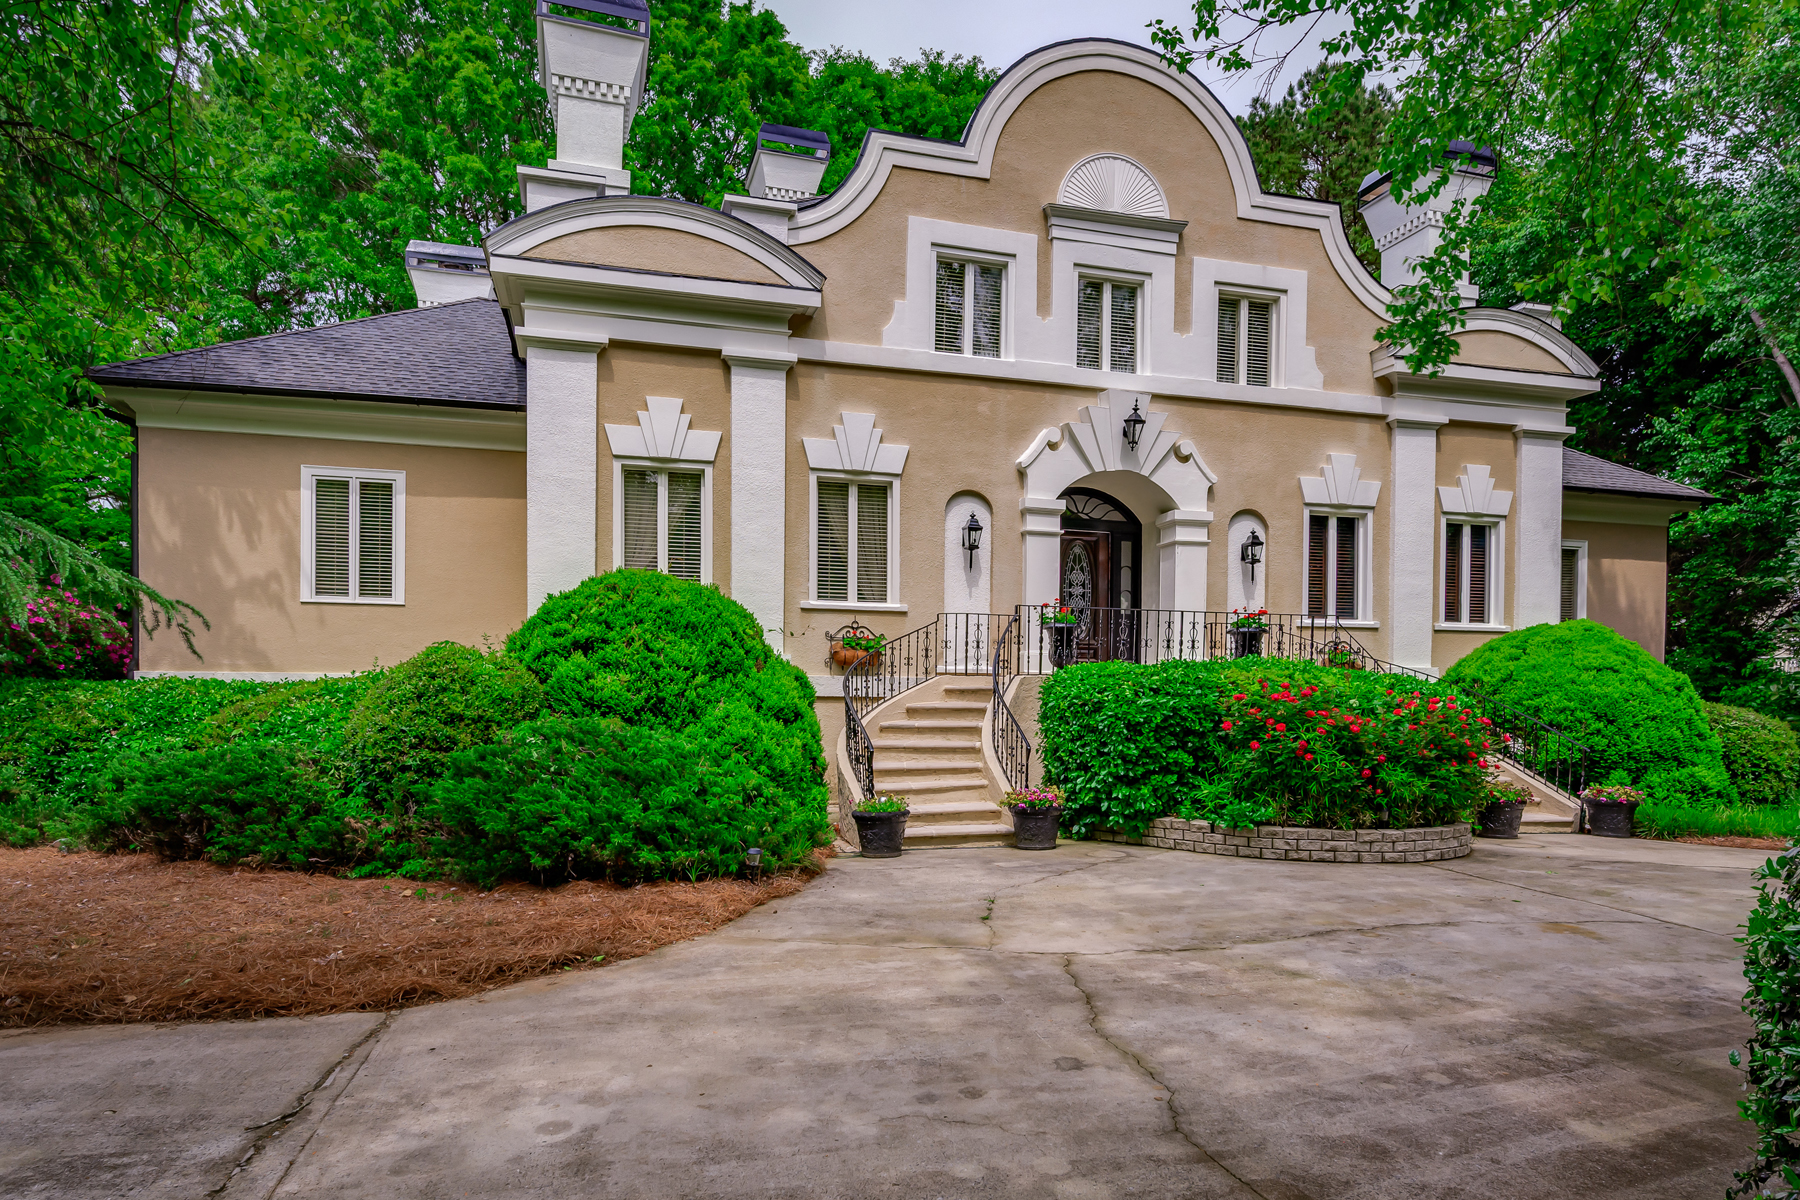 Single Family Homes for Sale at Original One of a Kind Frank Spitzmiller Designed Home 5380 Chelsen Wood Drive Johns Creek, Georgia 30097 United States